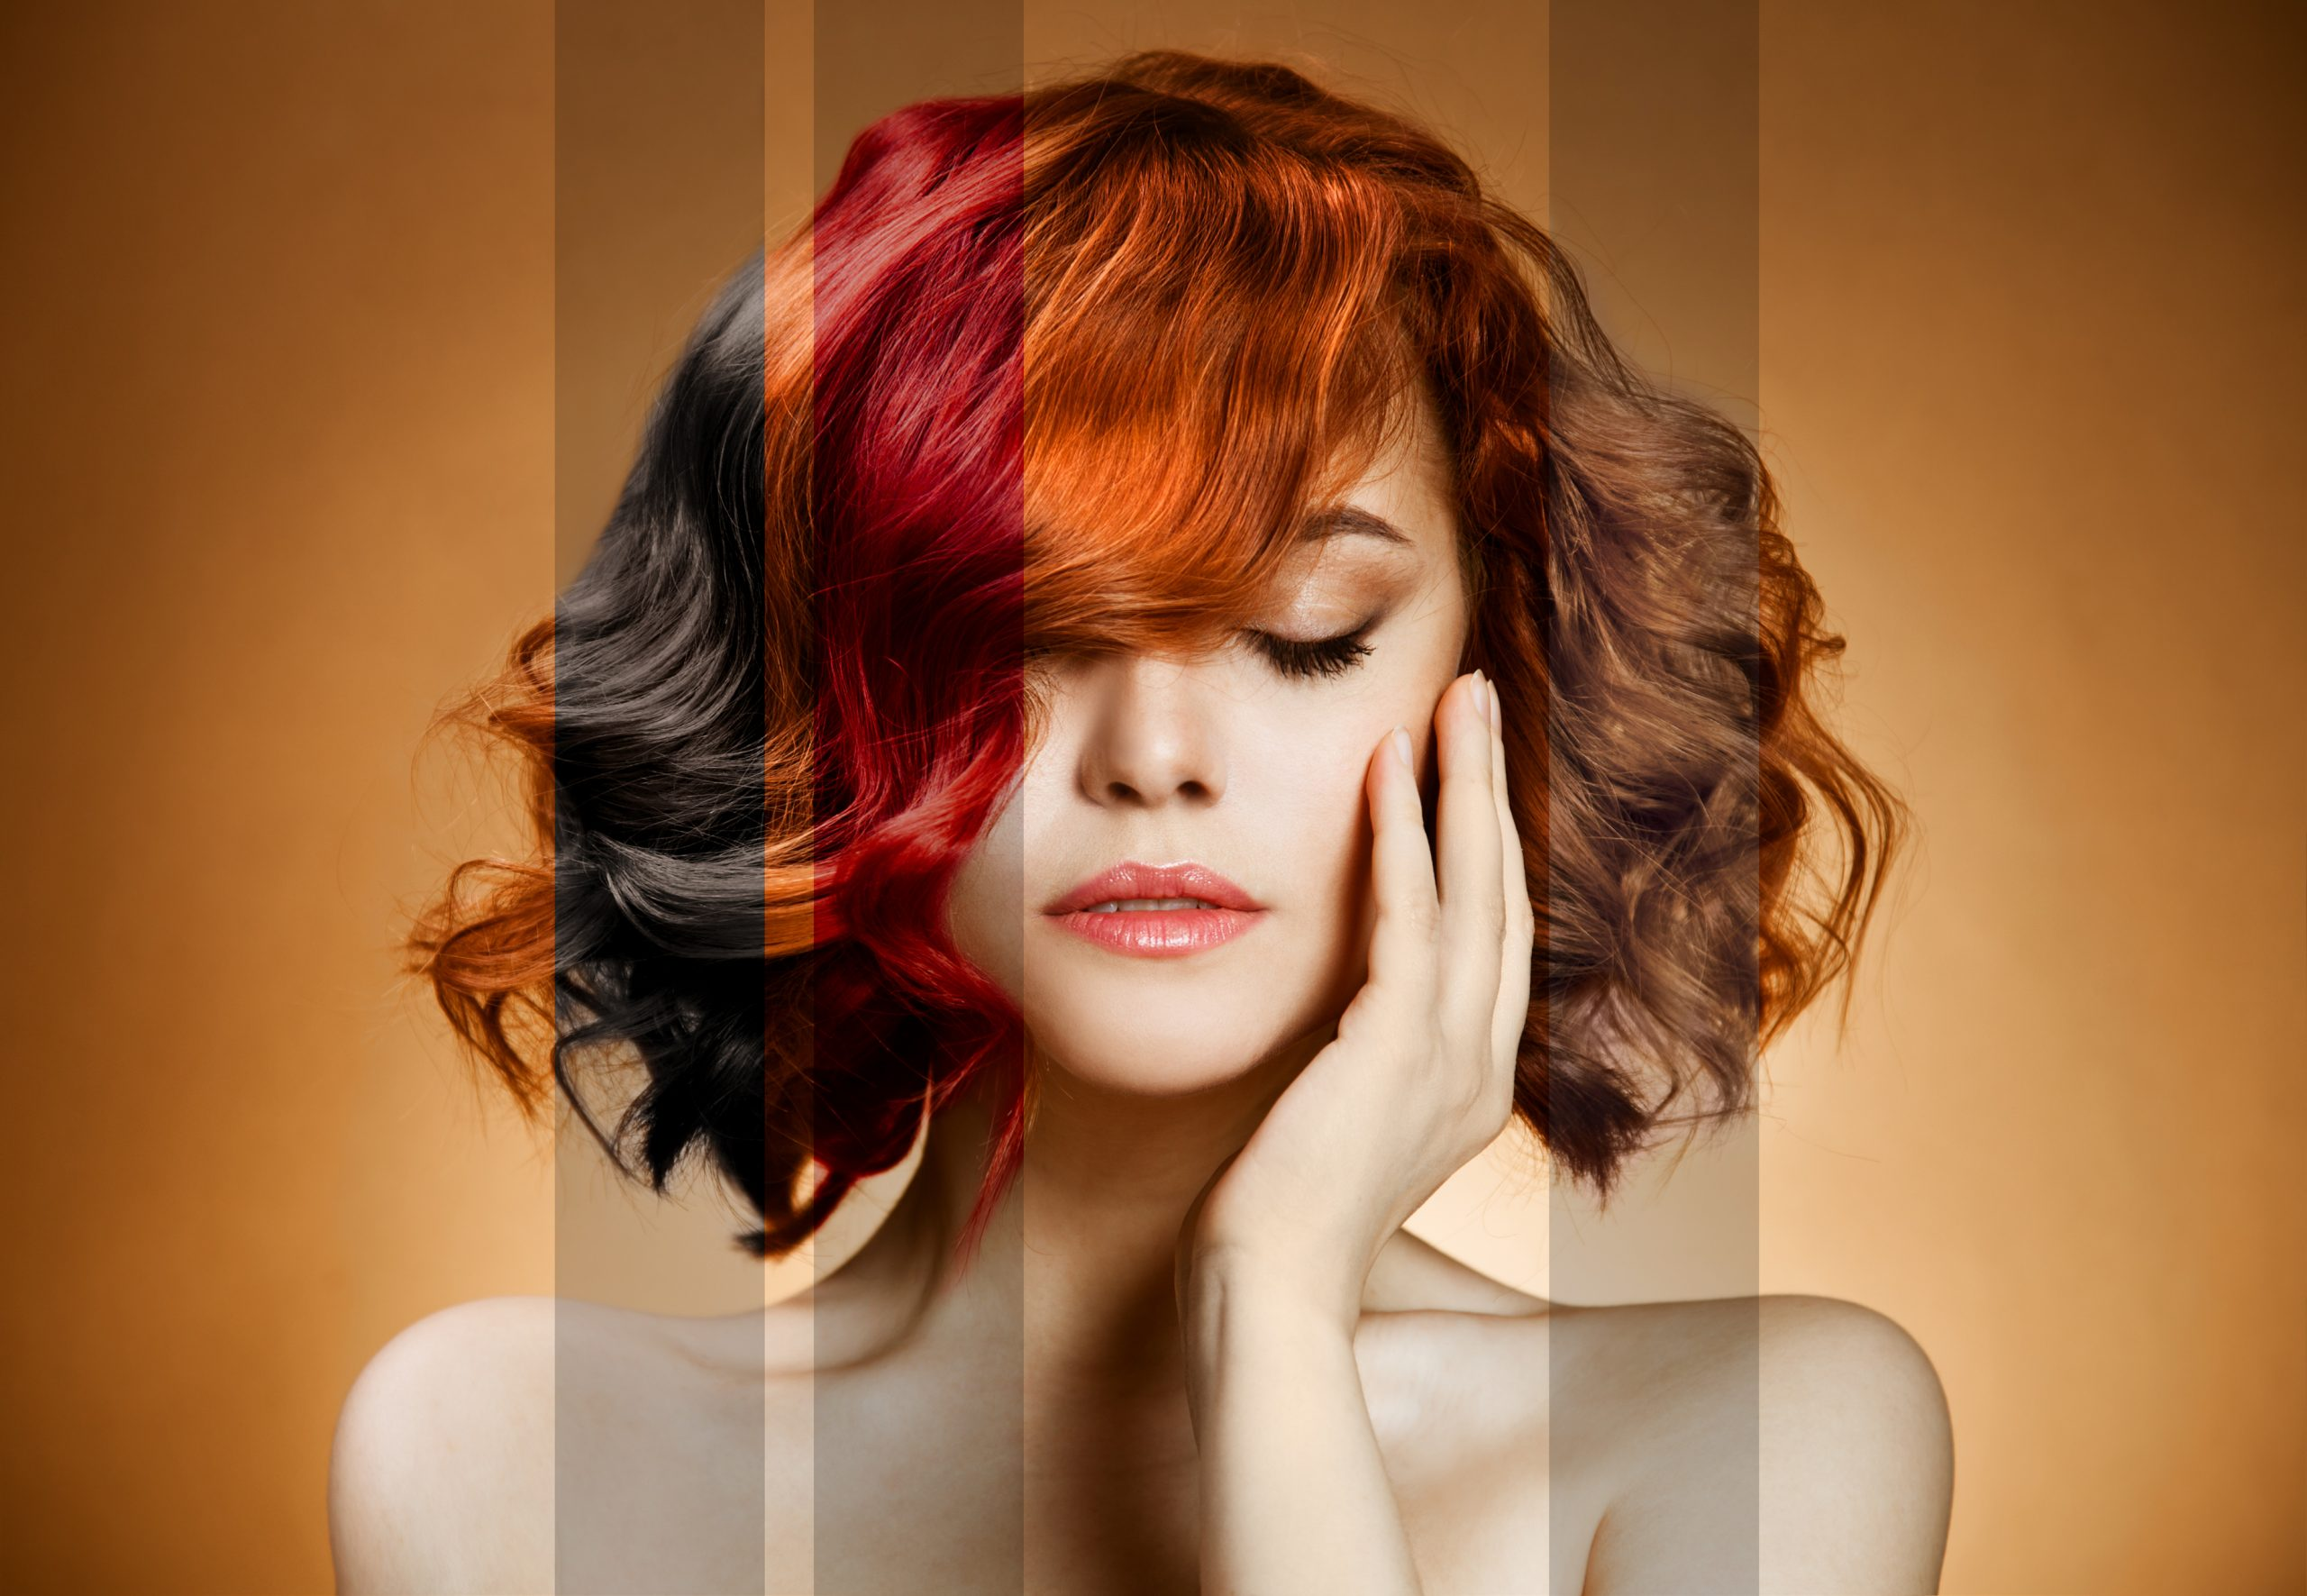 Are Hair dyes carcinogenic or safe to use? Read more to know